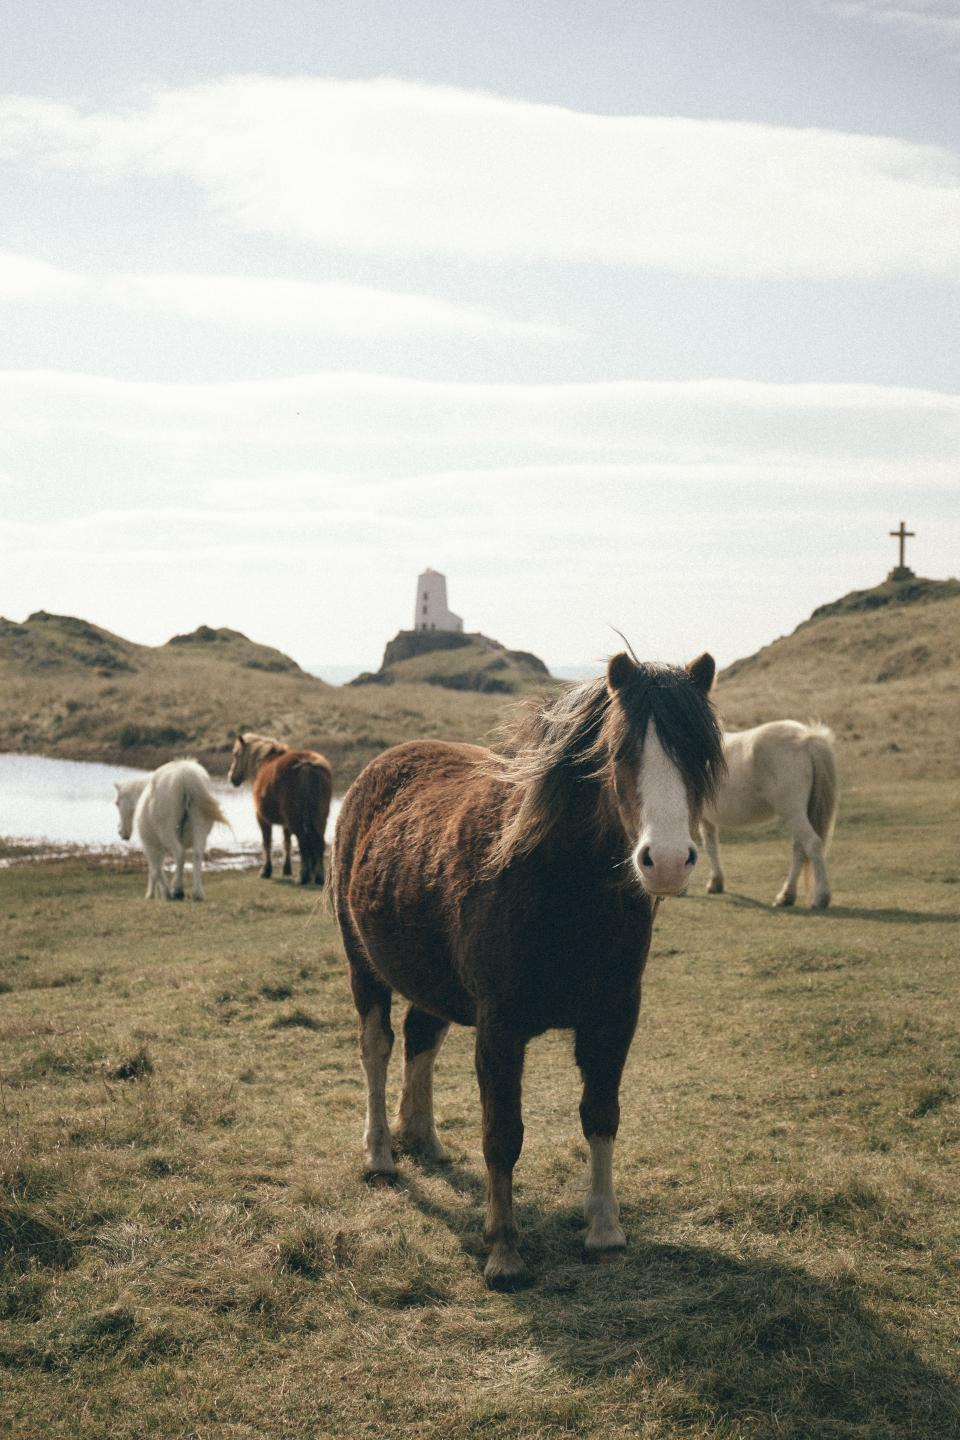 sea, water, coast, grass, highland, lighthouse, travel, donkey, horse, clouds, sky